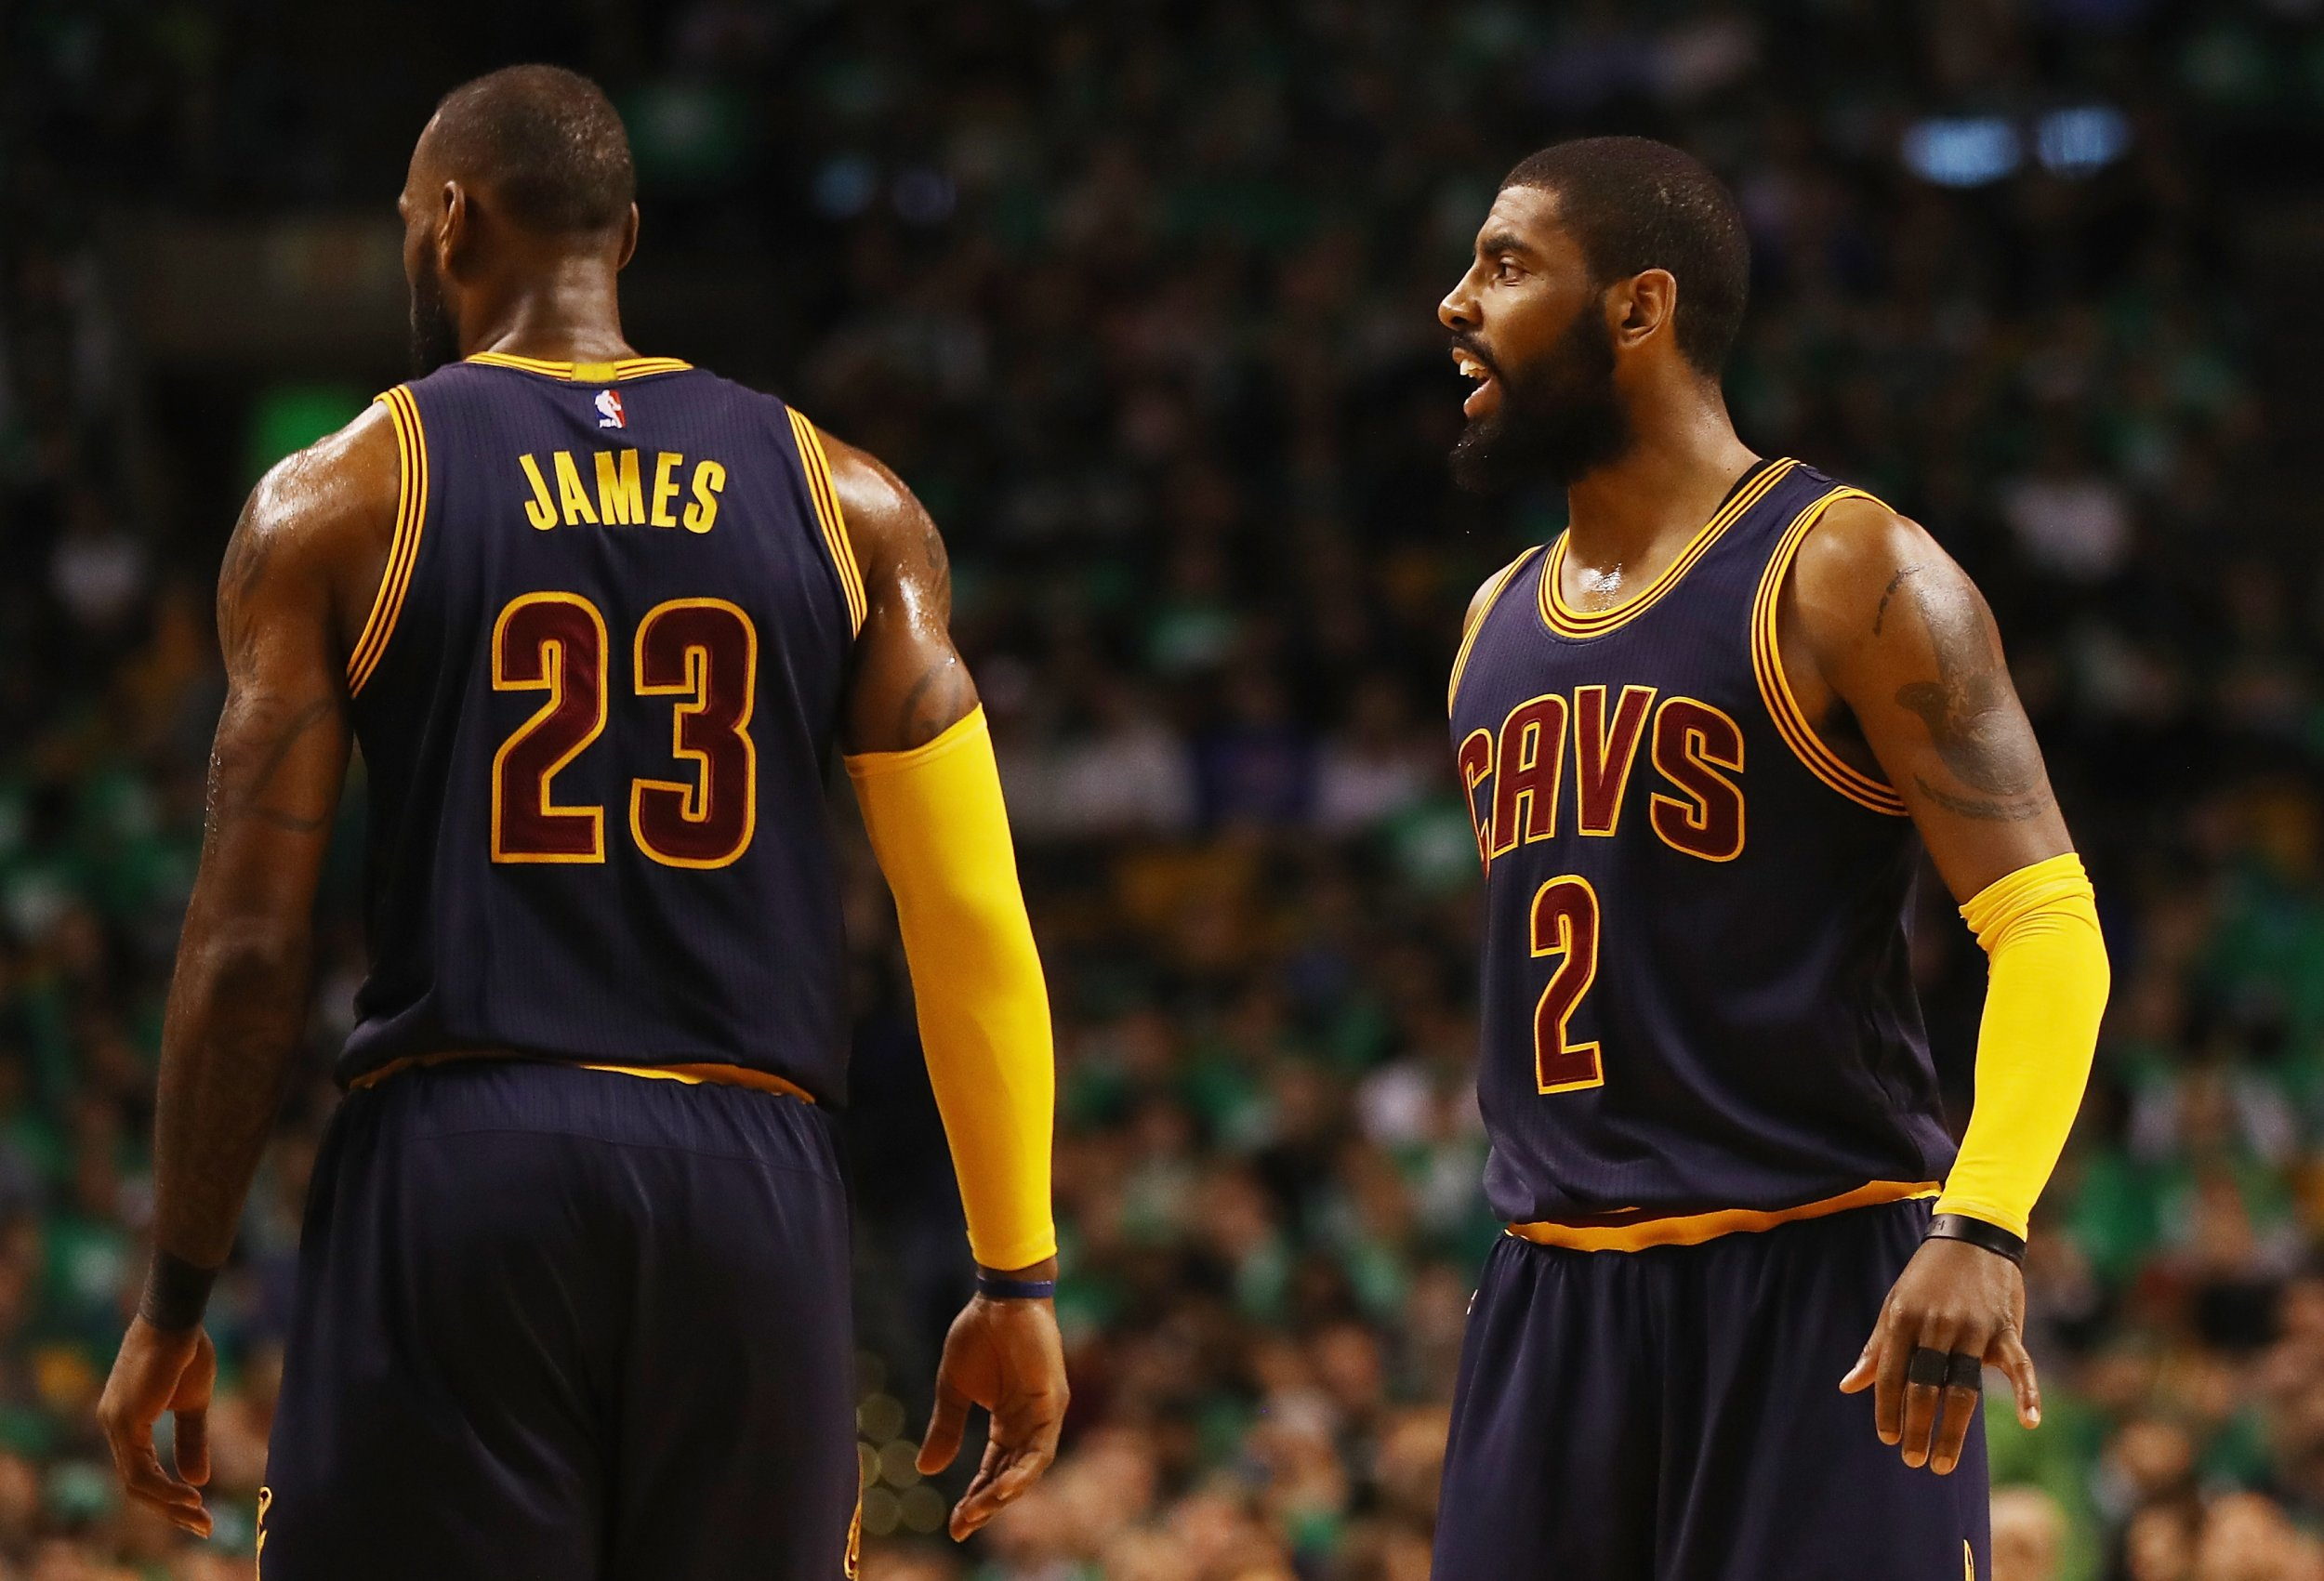 Kyrie Irving Threw Shade at LeBron James and Cavaliers in Icy ESPN